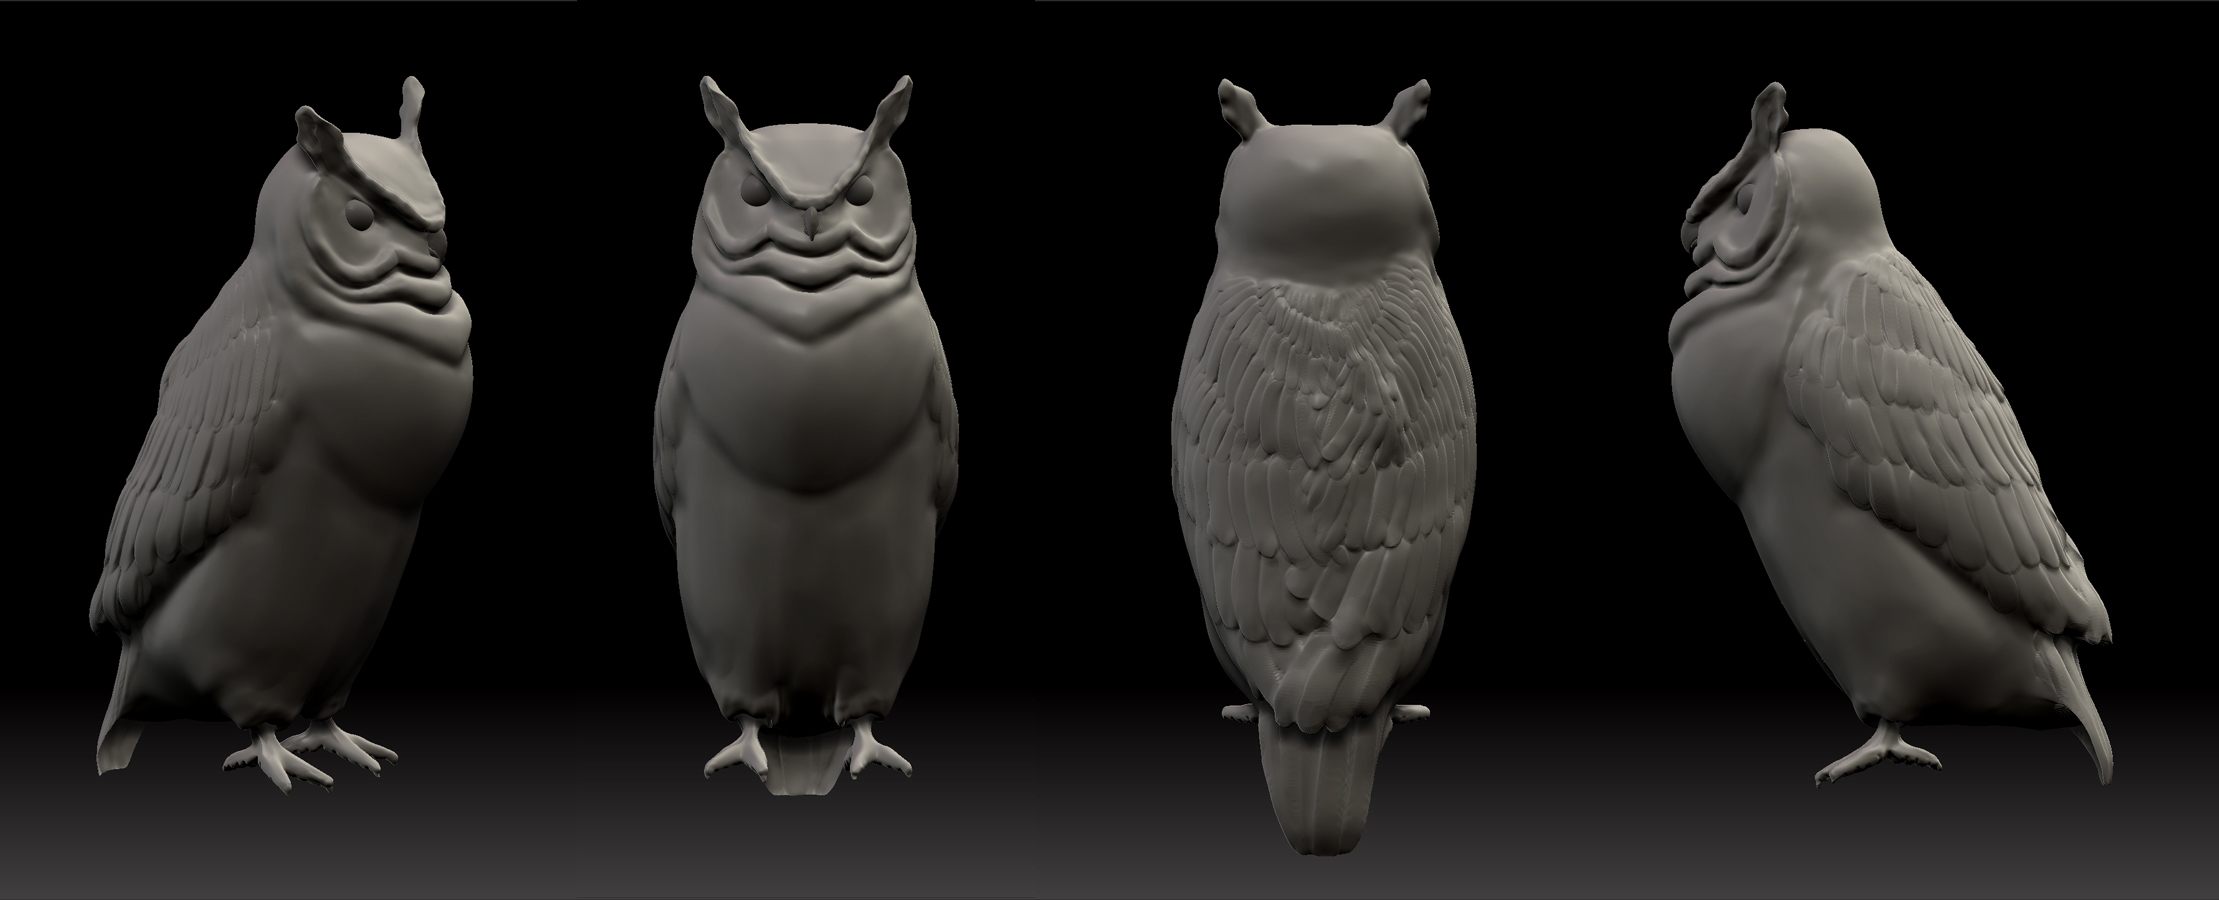 The Owl-characterstripbuho-copia.jpg